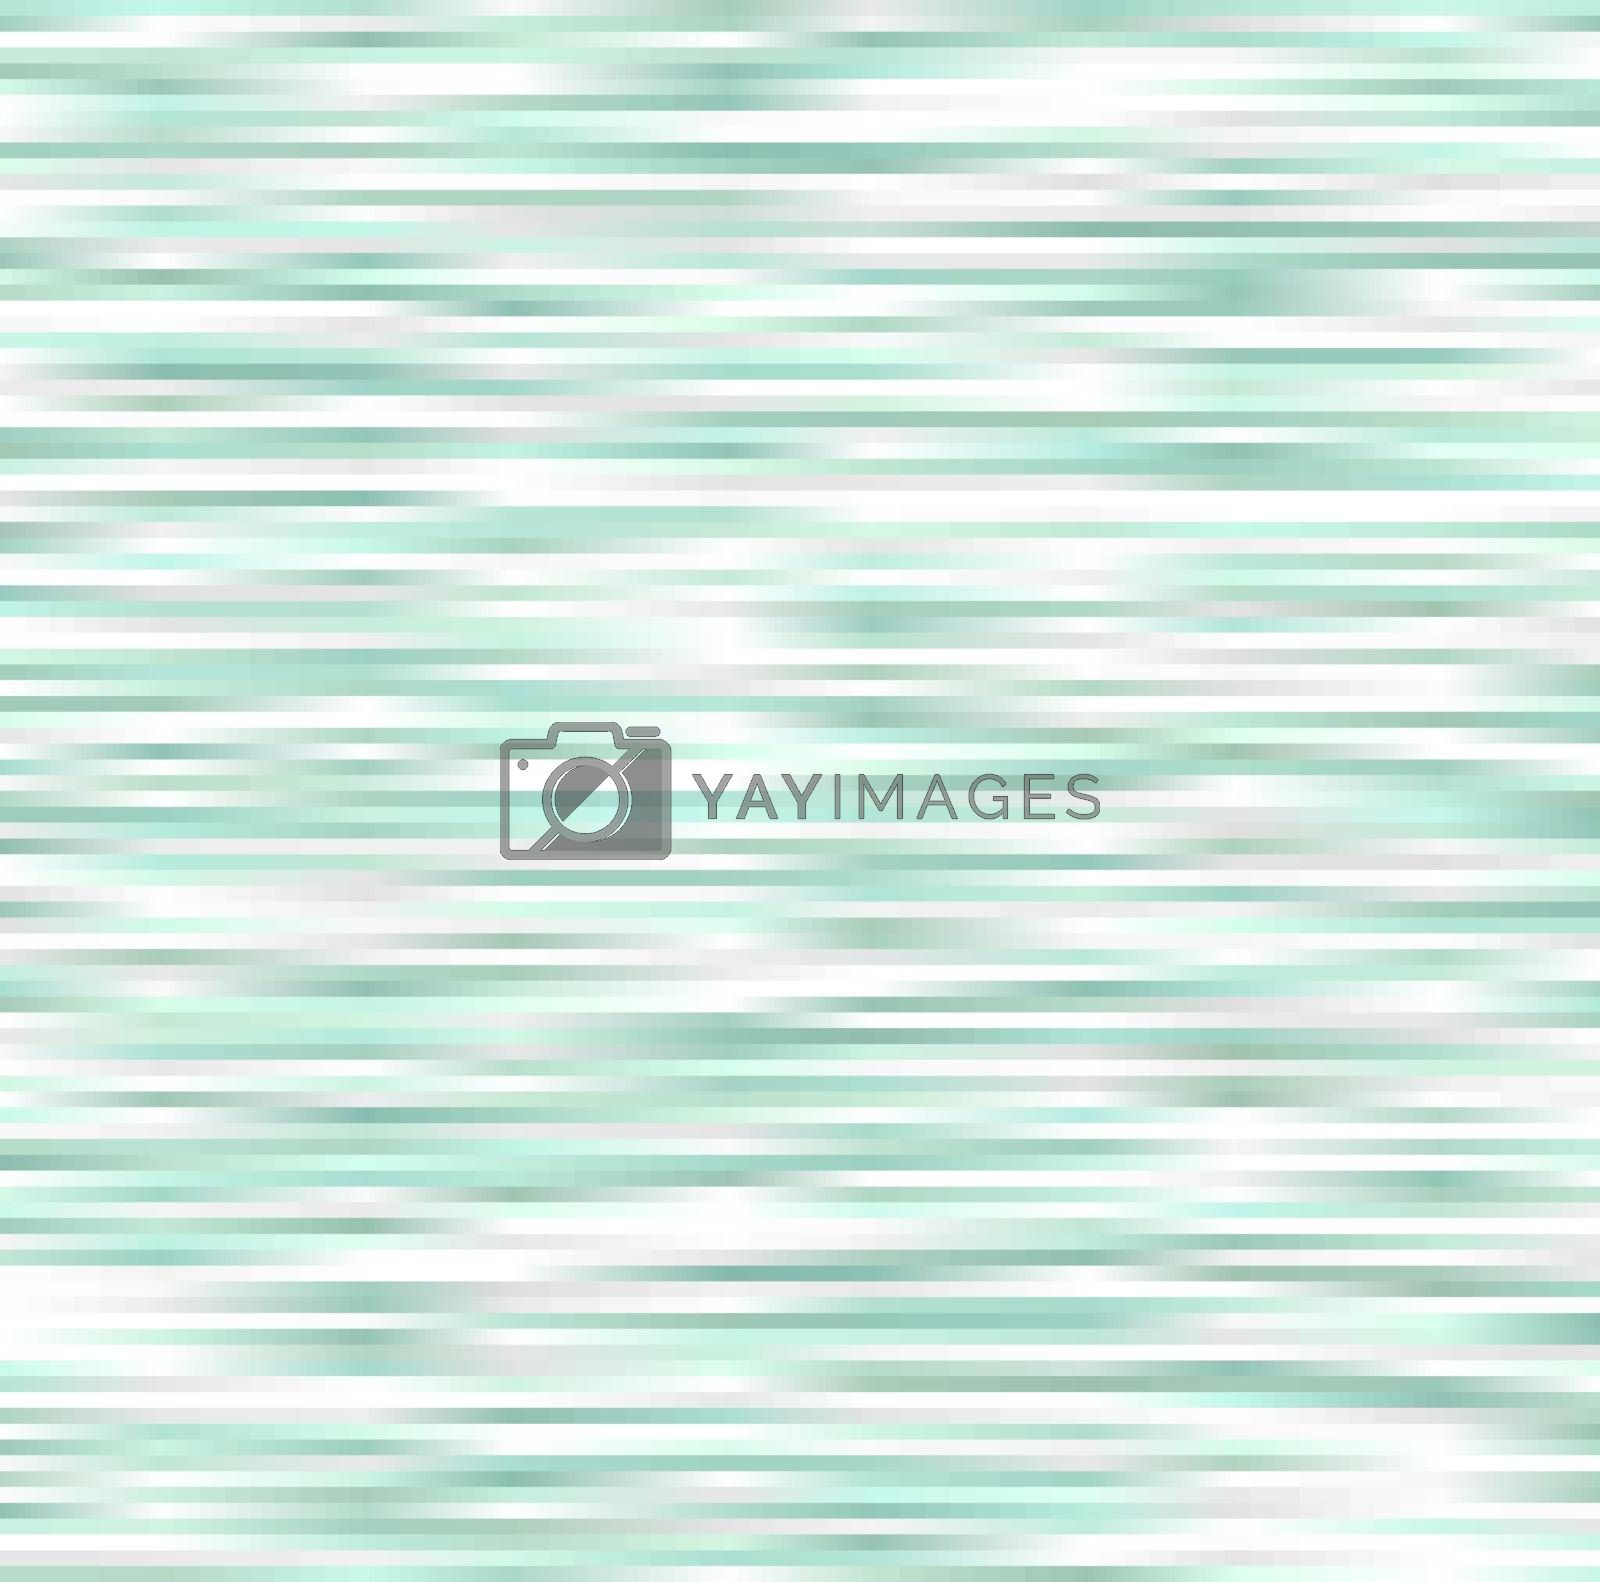 square horizontal stripes green and white gradient background